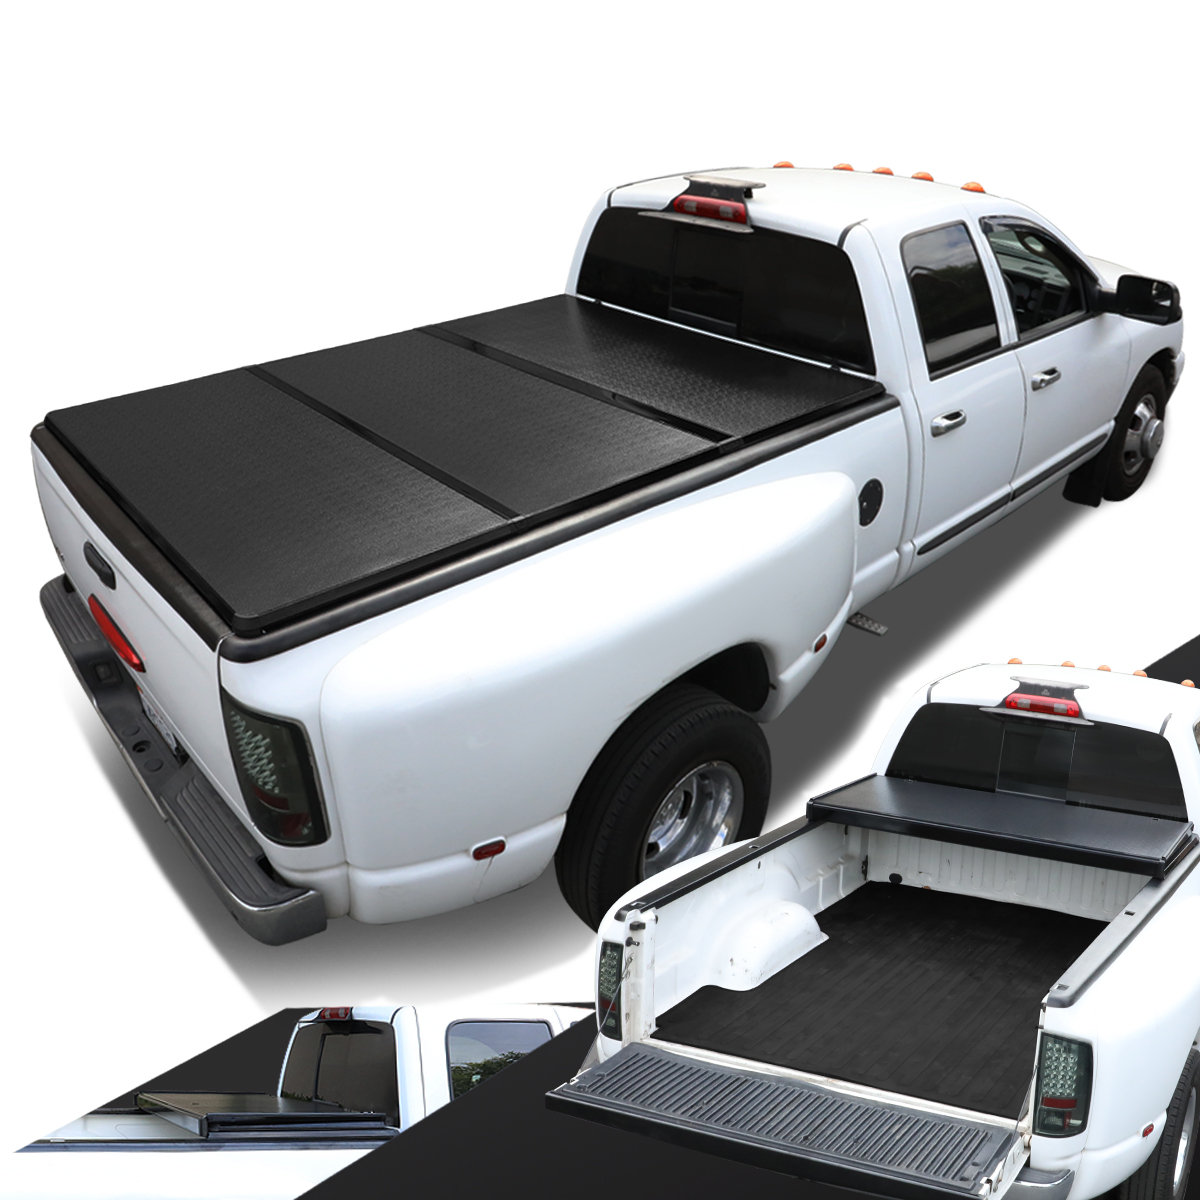 07 14 Chevy Silverado Gmc Sierra 5 8 Bed Tri Fold Hard Tonneau Cover Led Lights Httc 33 015